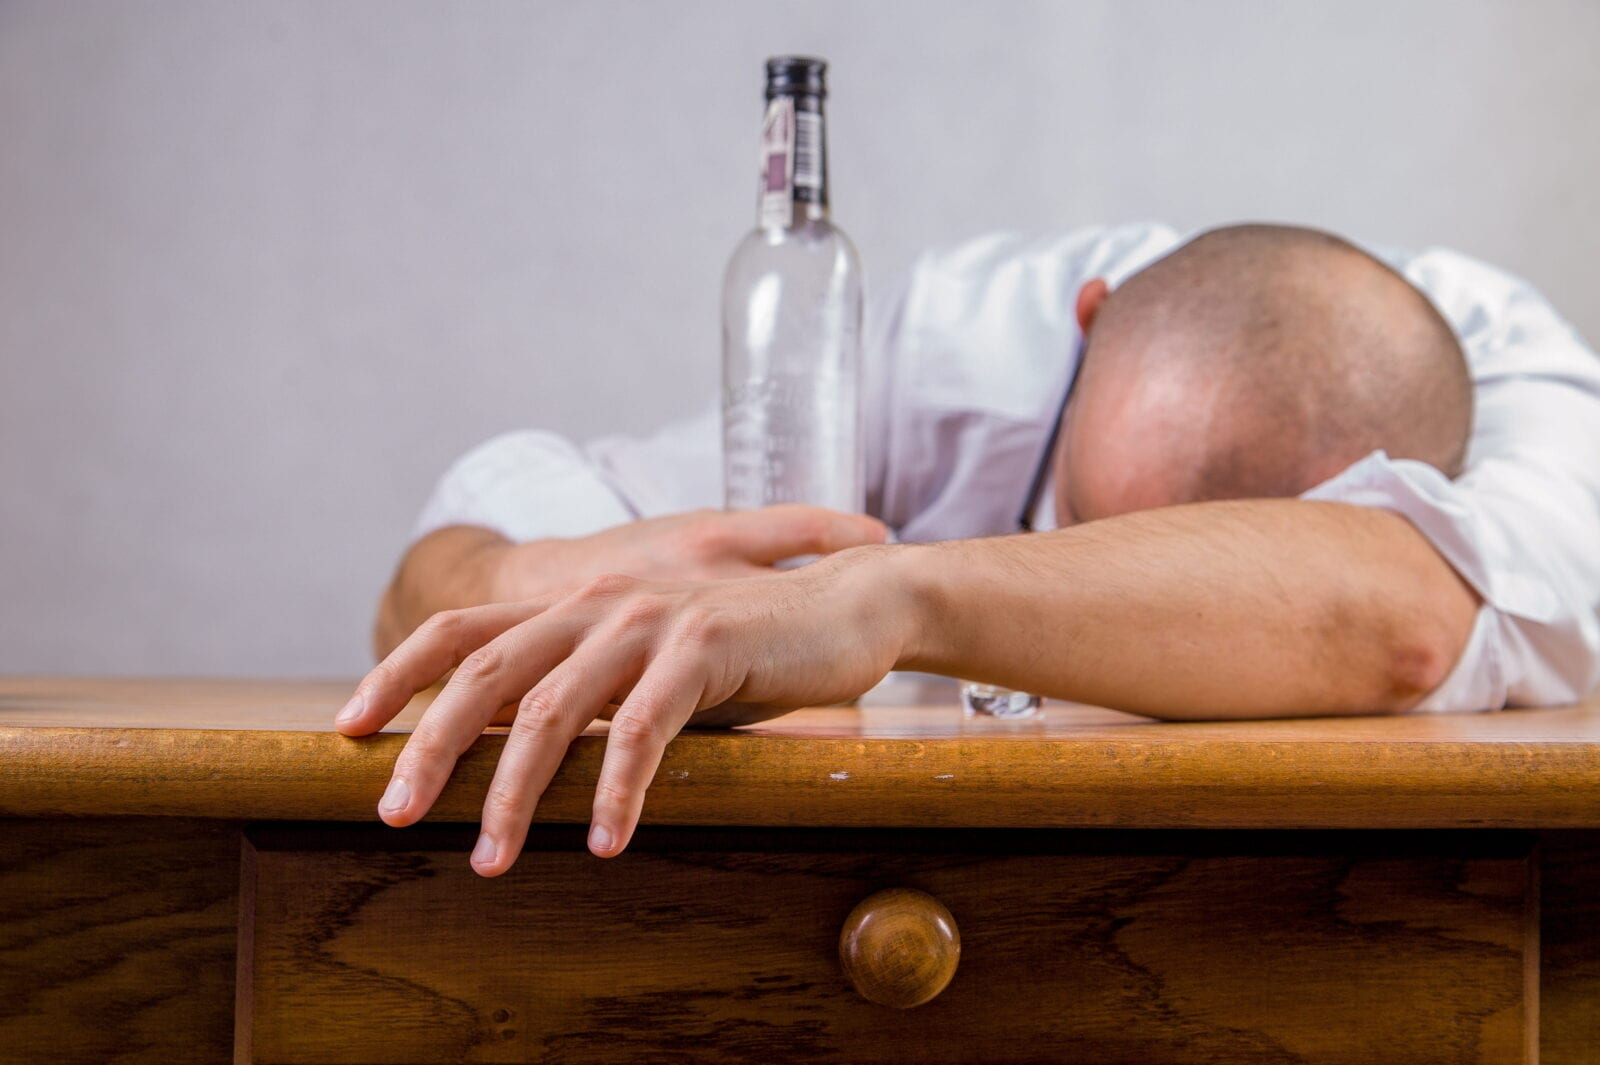 Manchester unveiled as one of the most hungover cities in the UK, The Manc